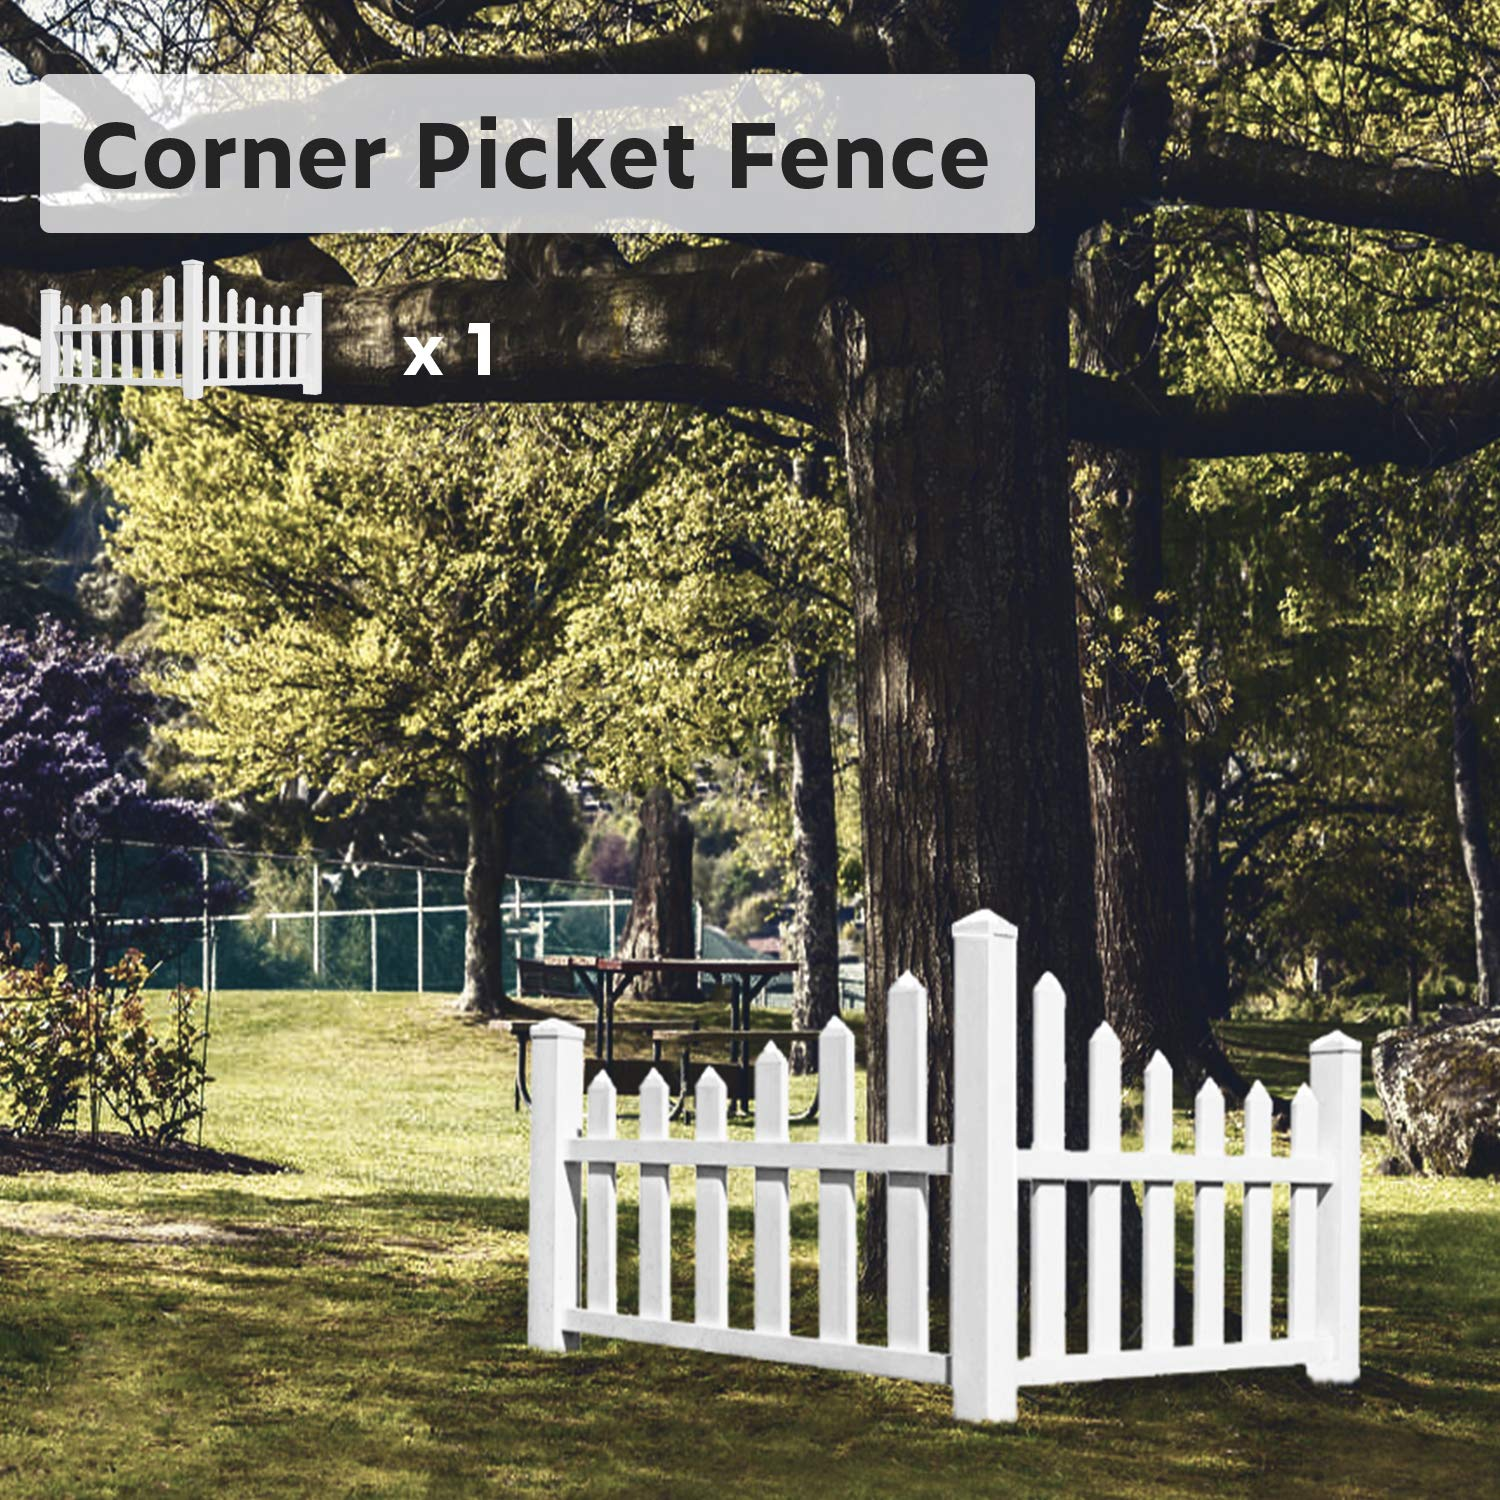 "Ecoopts 38"" X 95"" Vinyl Corner Picket Enclosure Fence Panel Screen Level Top England Country Essentials Scalloped Accent Fencing for Yard, Gardens, Outdoor Products, White 1 Pic"